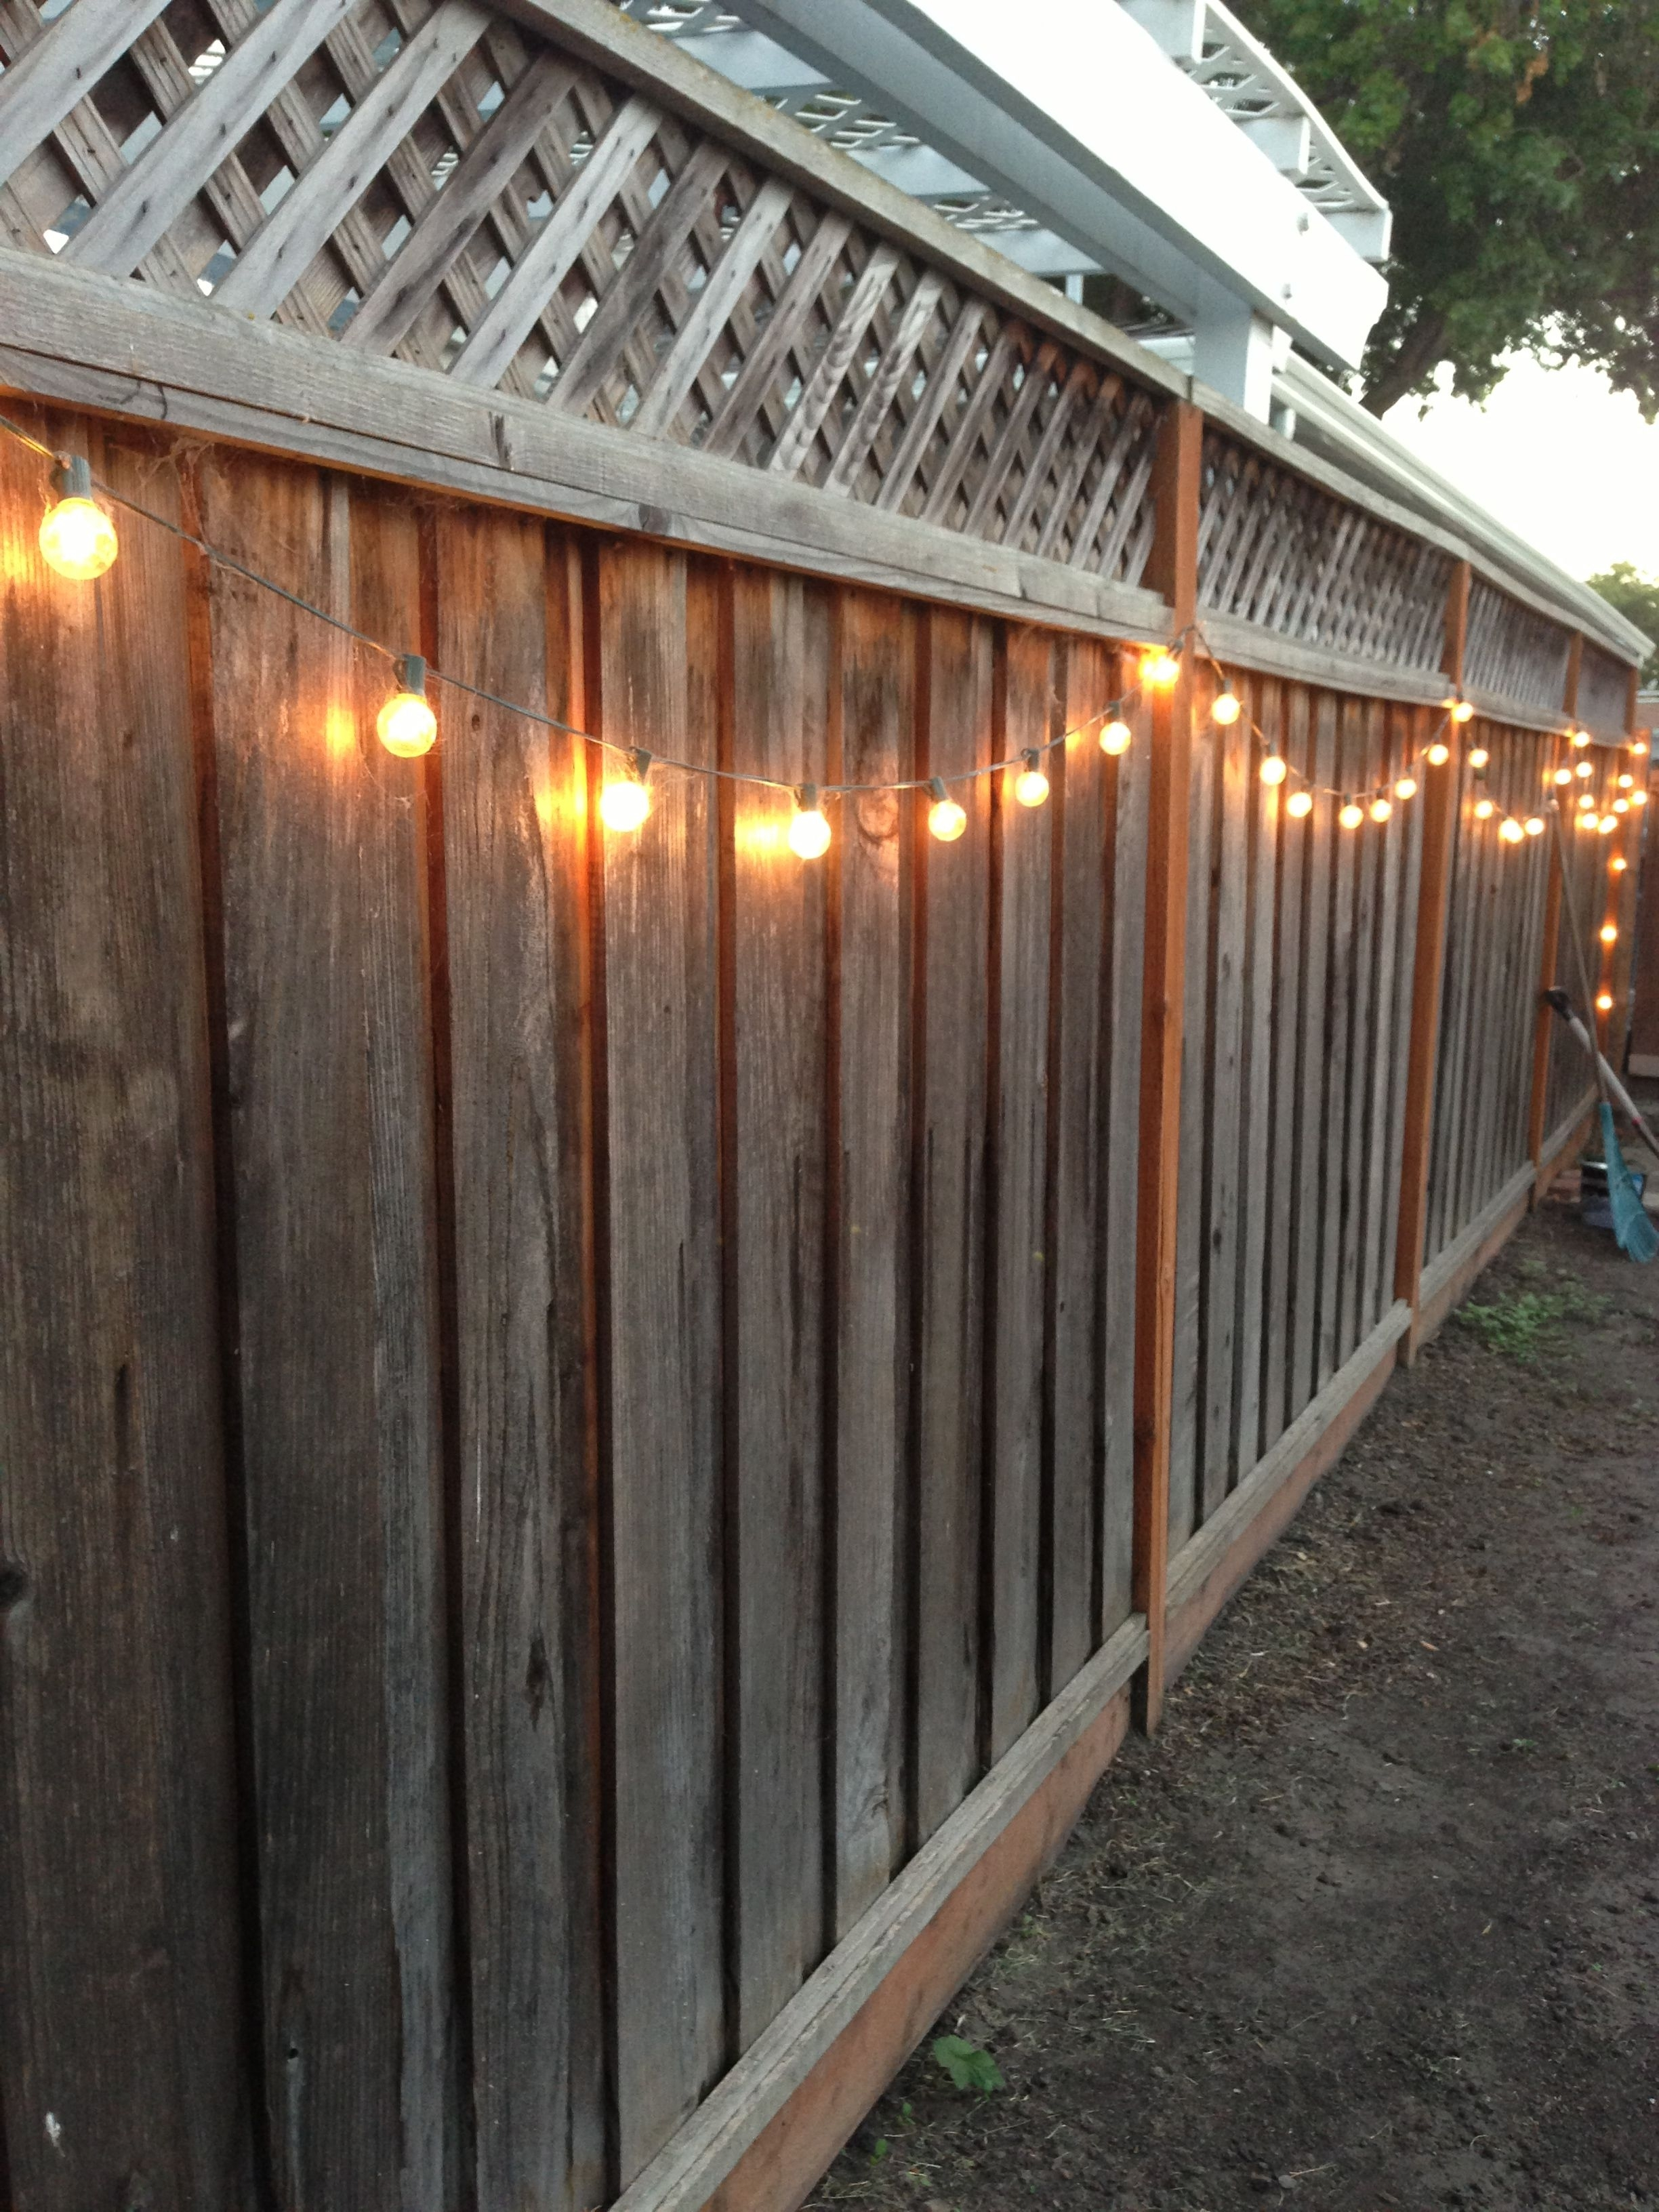 Inspiration about Diy Backyard Lighting. Hang Lights On Your Fence! | Diy | Pinterest Throughout Hanging Outdoor Lights On Fence (#1 of 15)